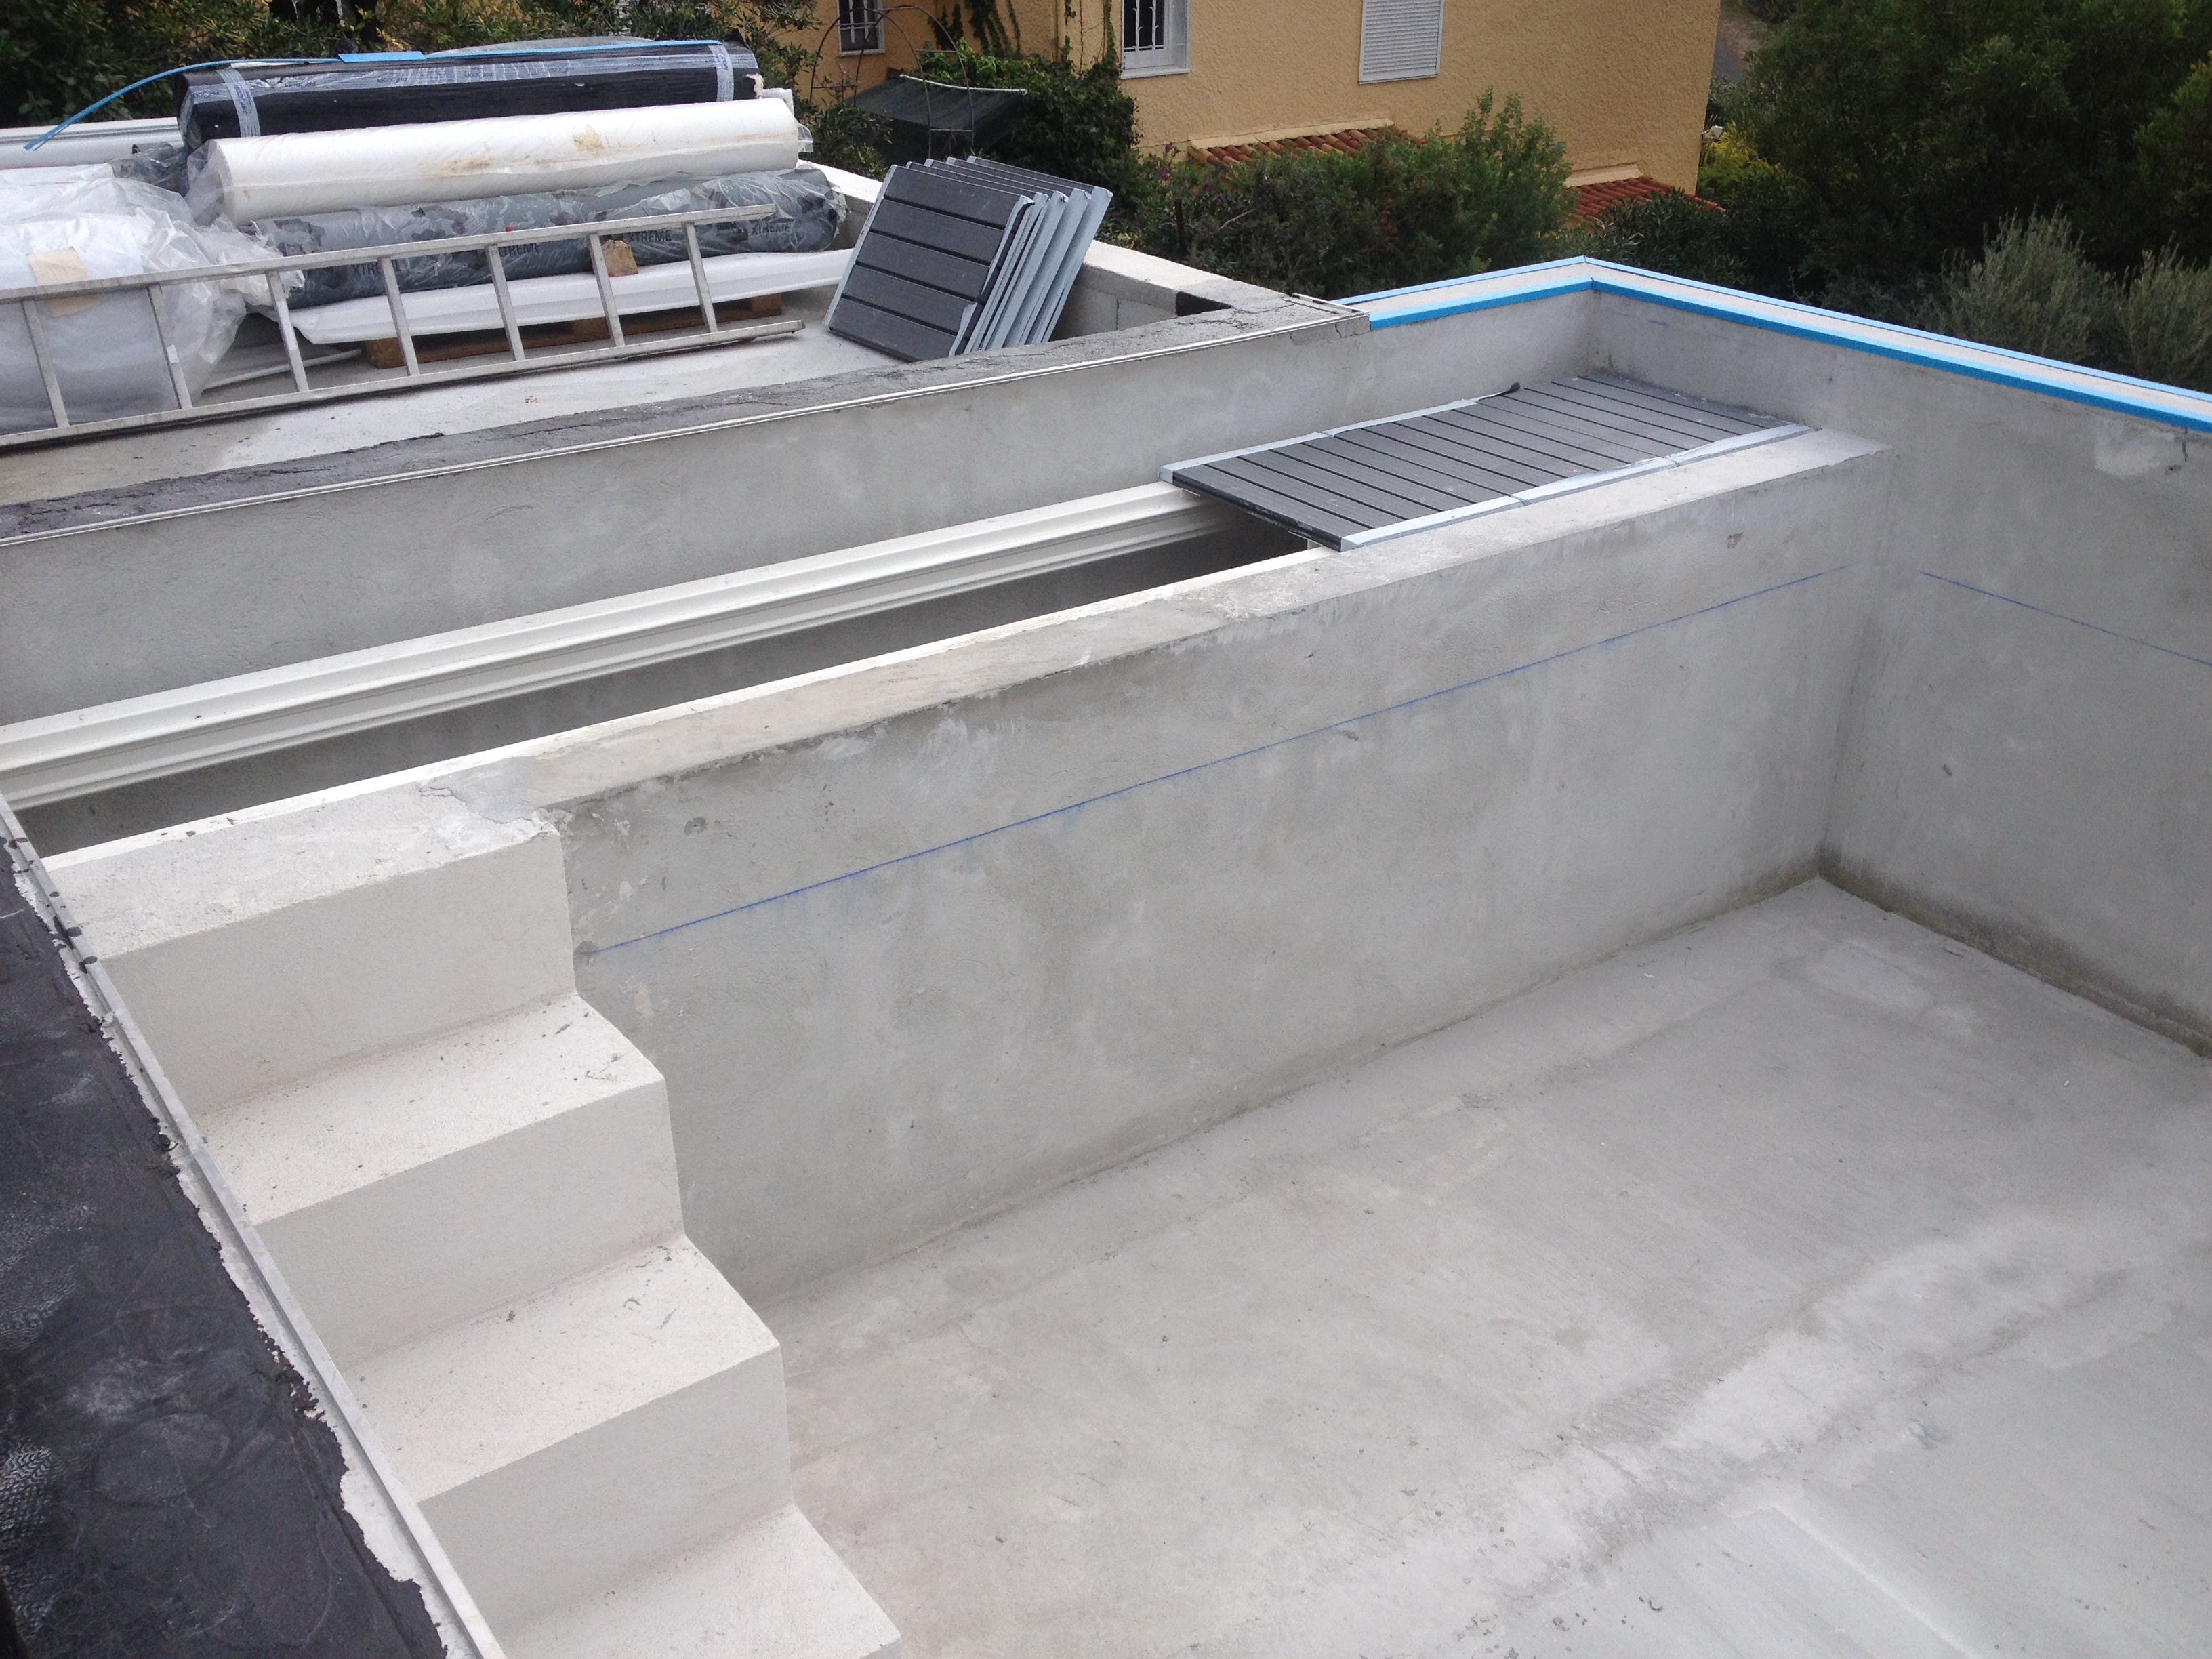 Une piscine en b ton arm d bordement carqueiranne for Construction piscine debordement